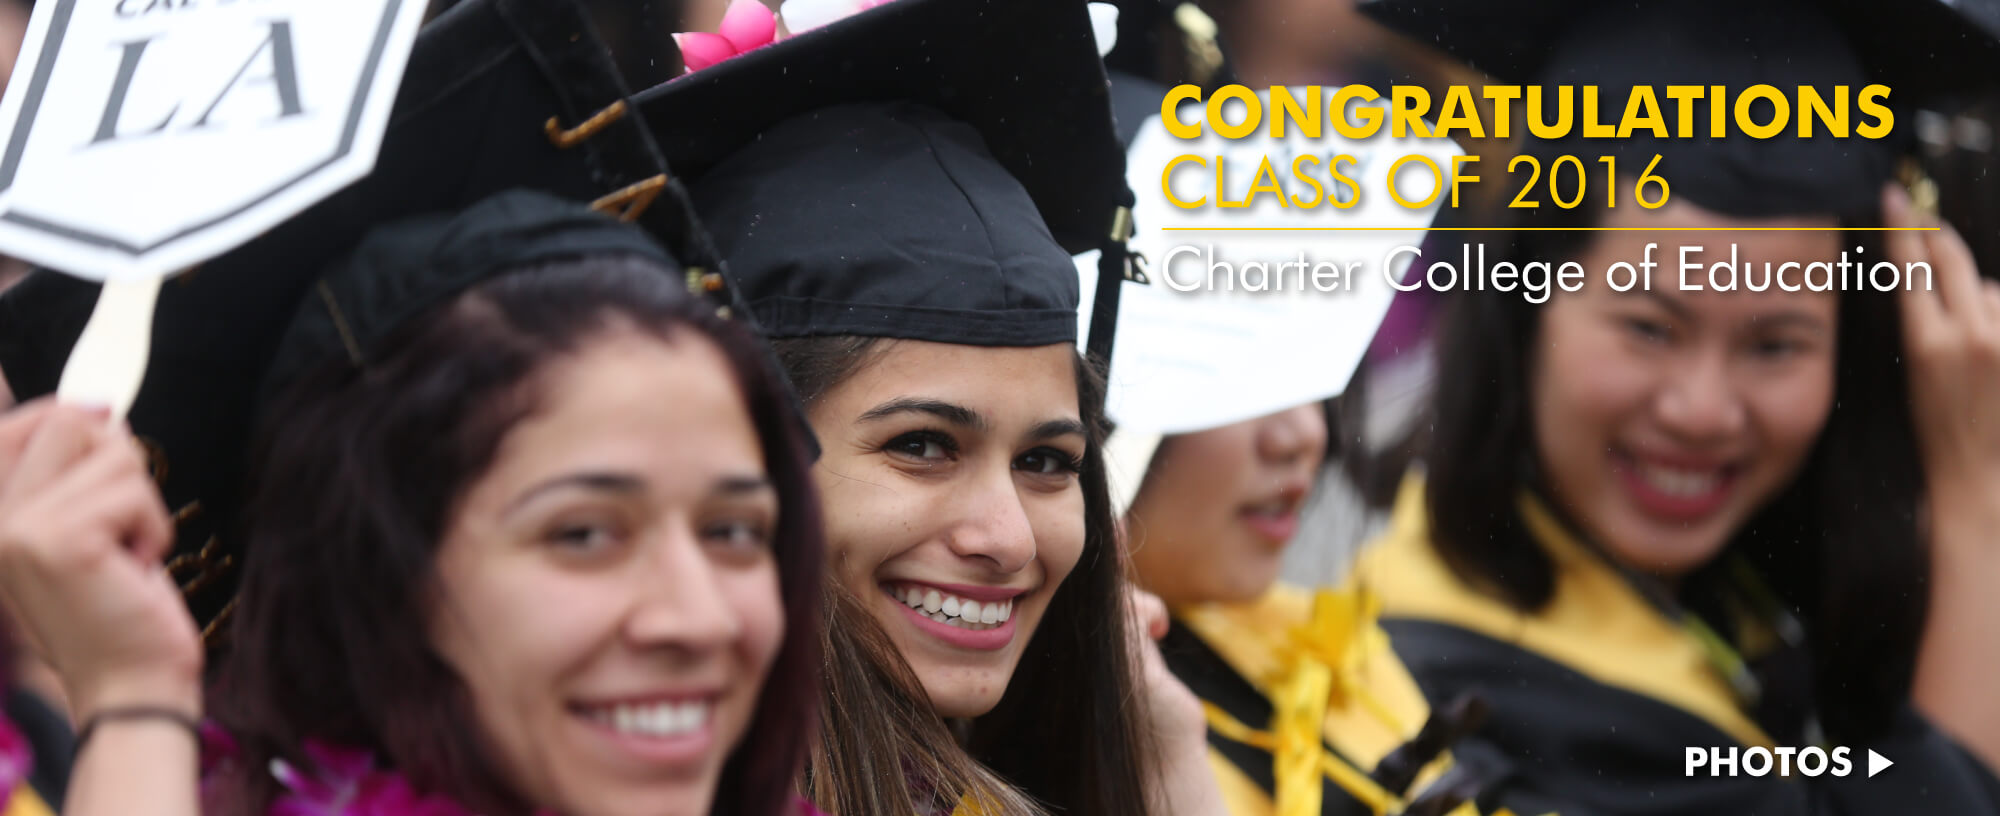 Congratulations Class of 2016: Charter College of Education